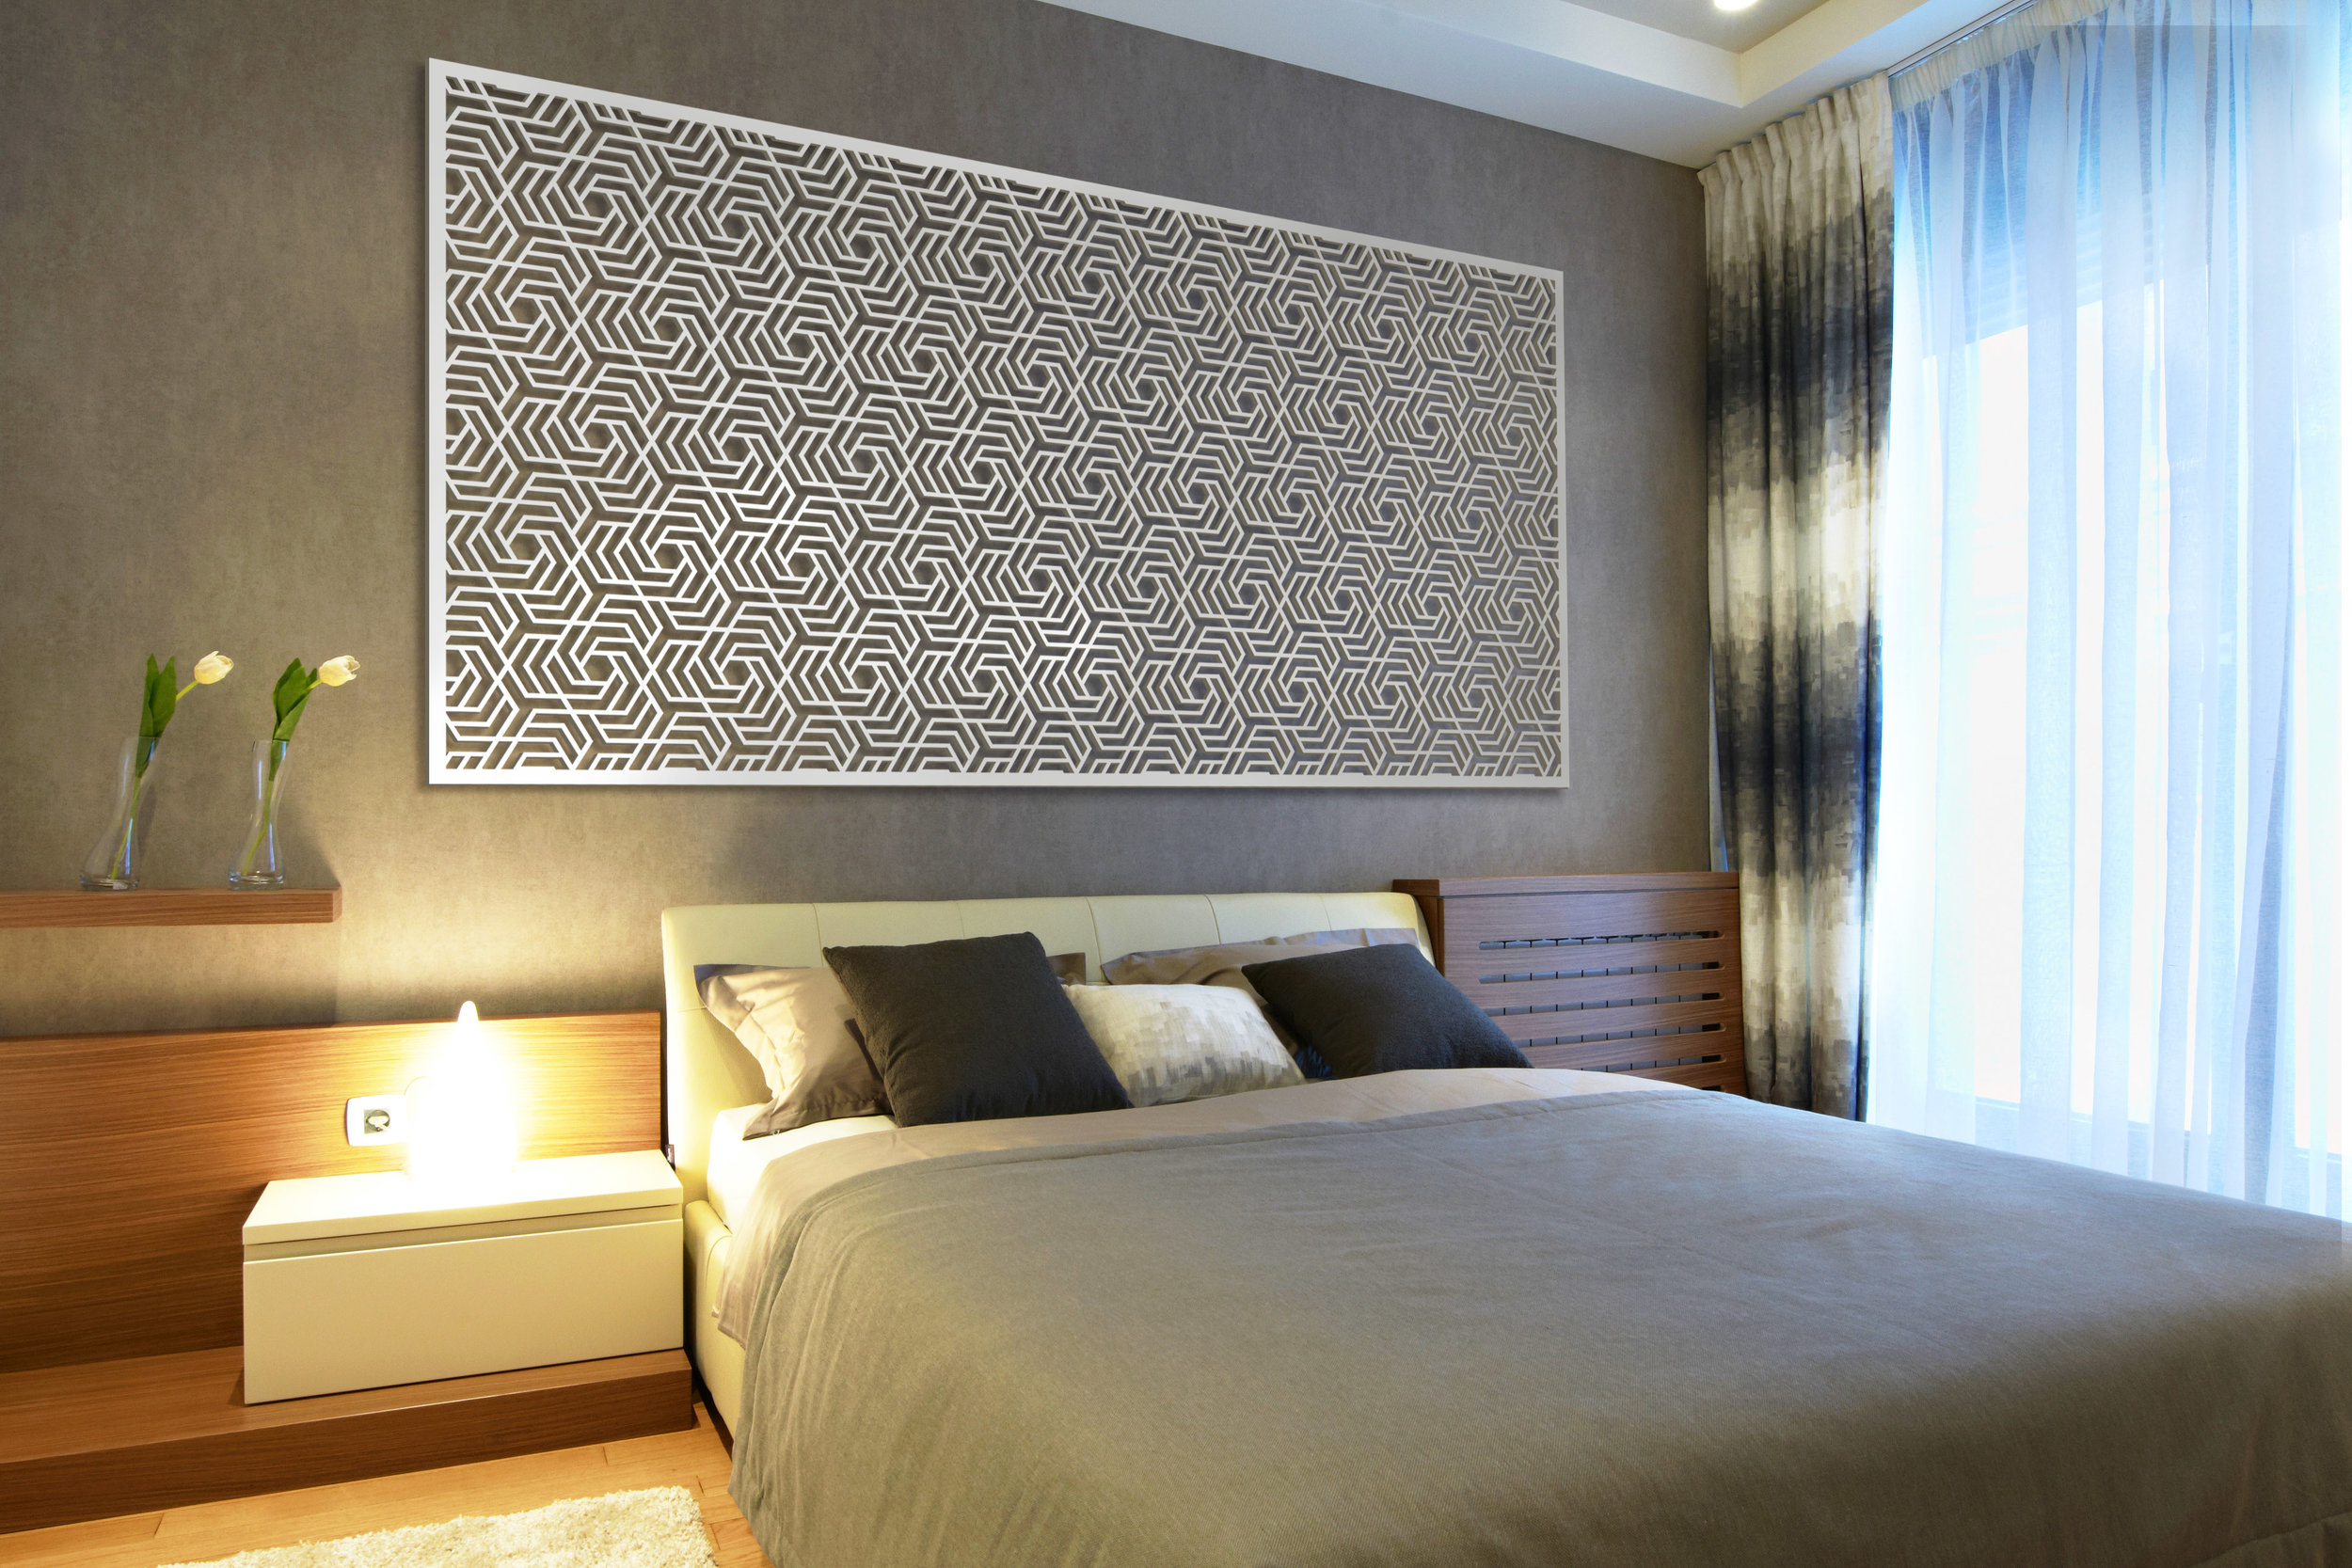 Installation Rendering C   Hexagon Puzzle decorative hotel wall panel - painted